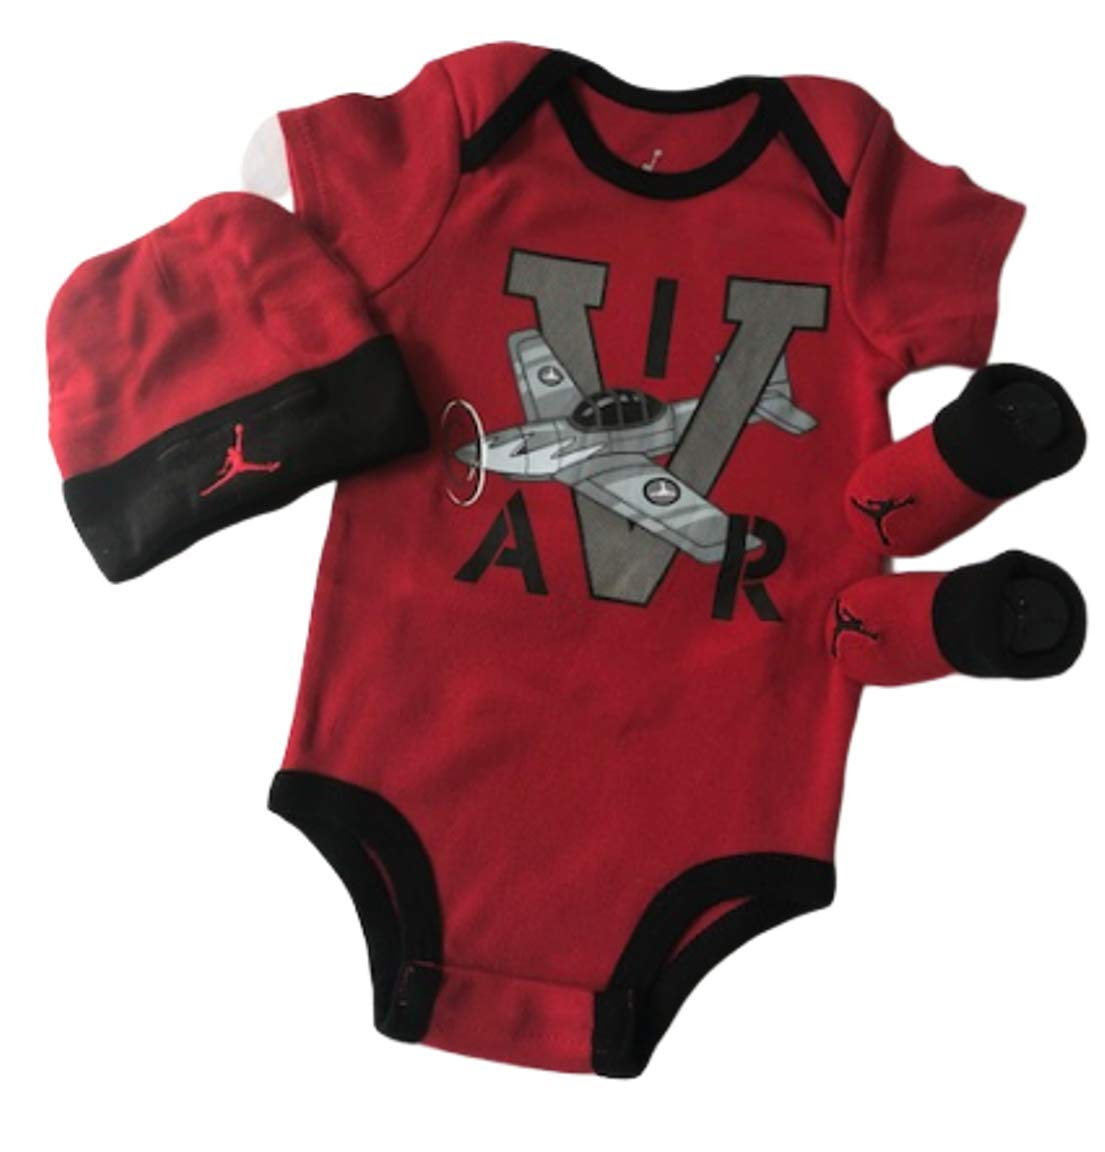 Nike Michael Jordan Infant Layette 3 Pcs Sets Bodysuit Cap and Booties (Black/RED Plane) by Nike